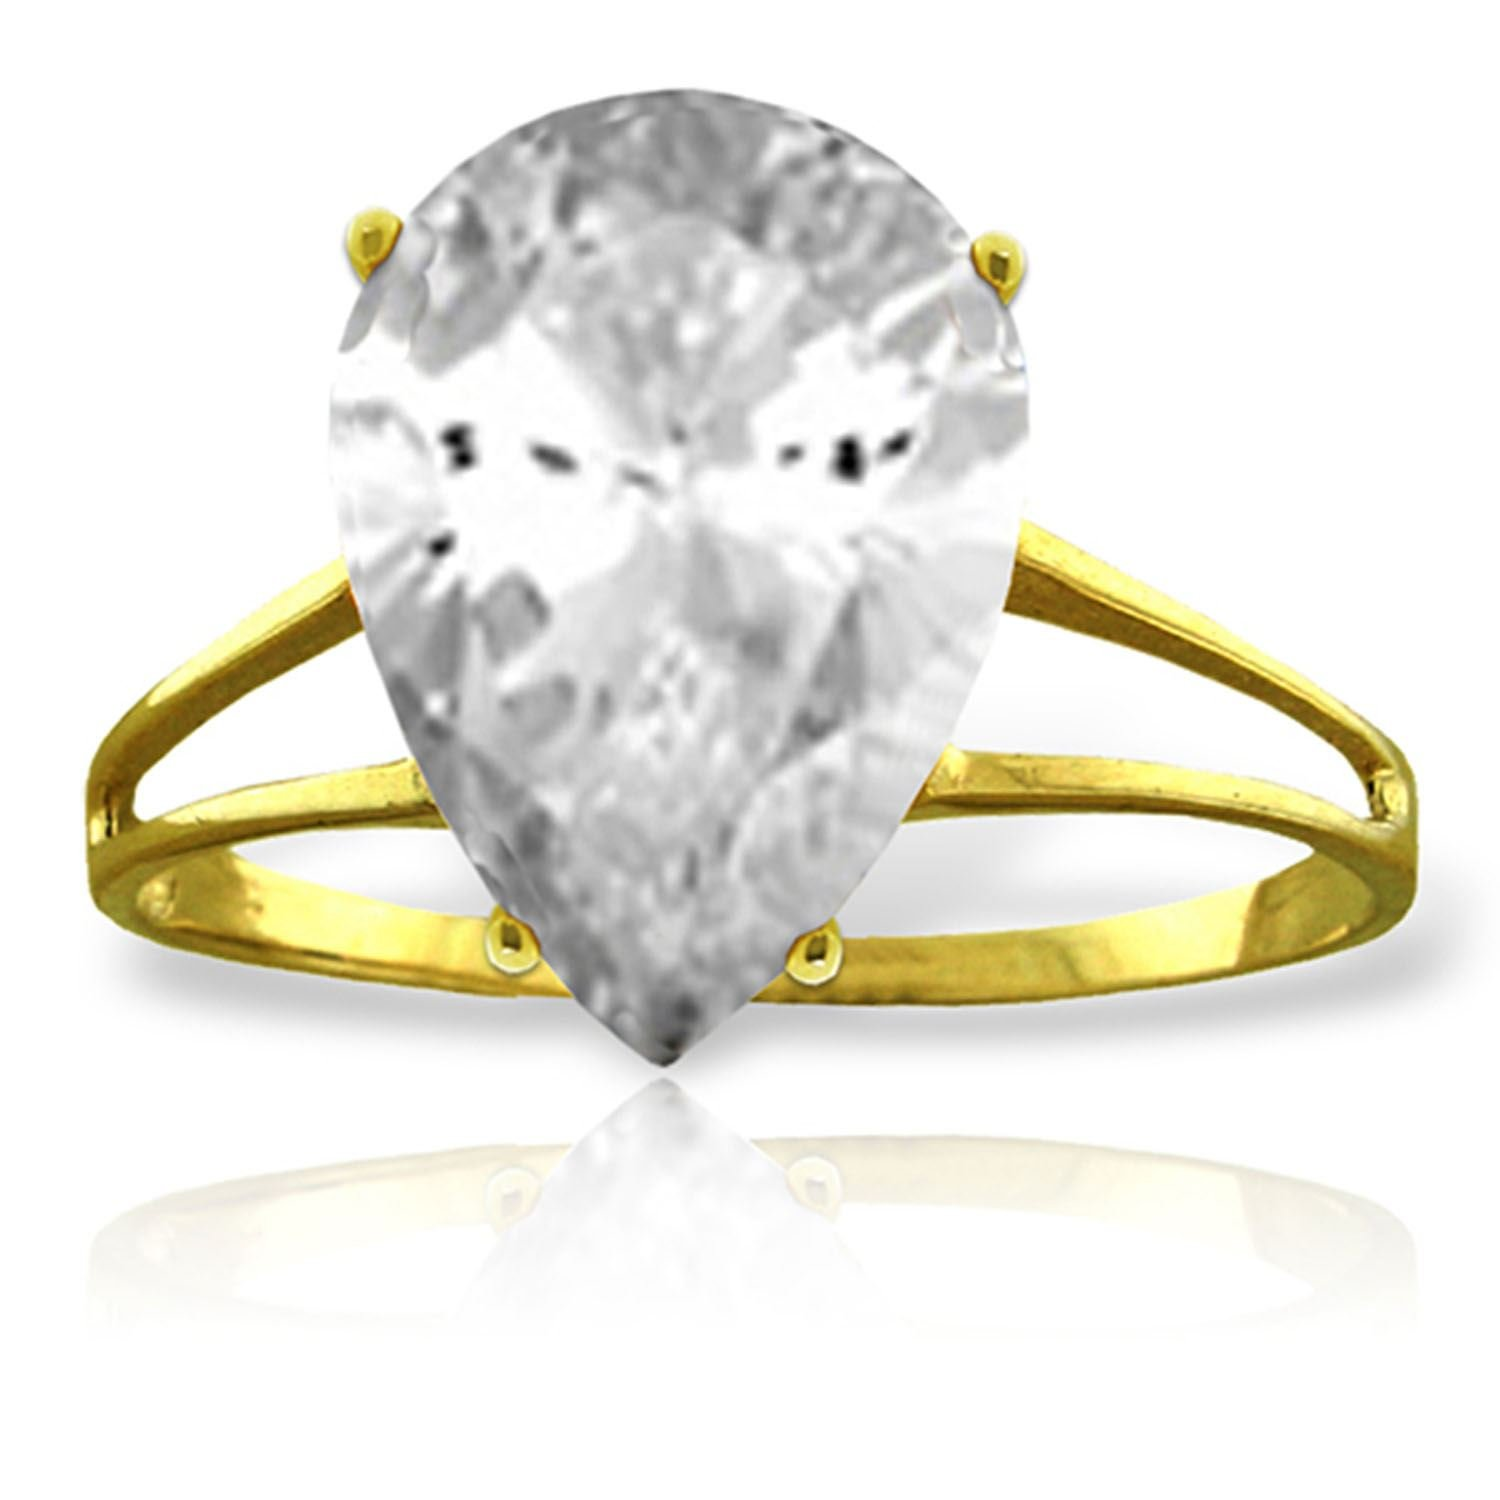 ALARRI 5 Carat 14K Solid Gold Ring Natural White Topaz With Ring Size 8.5